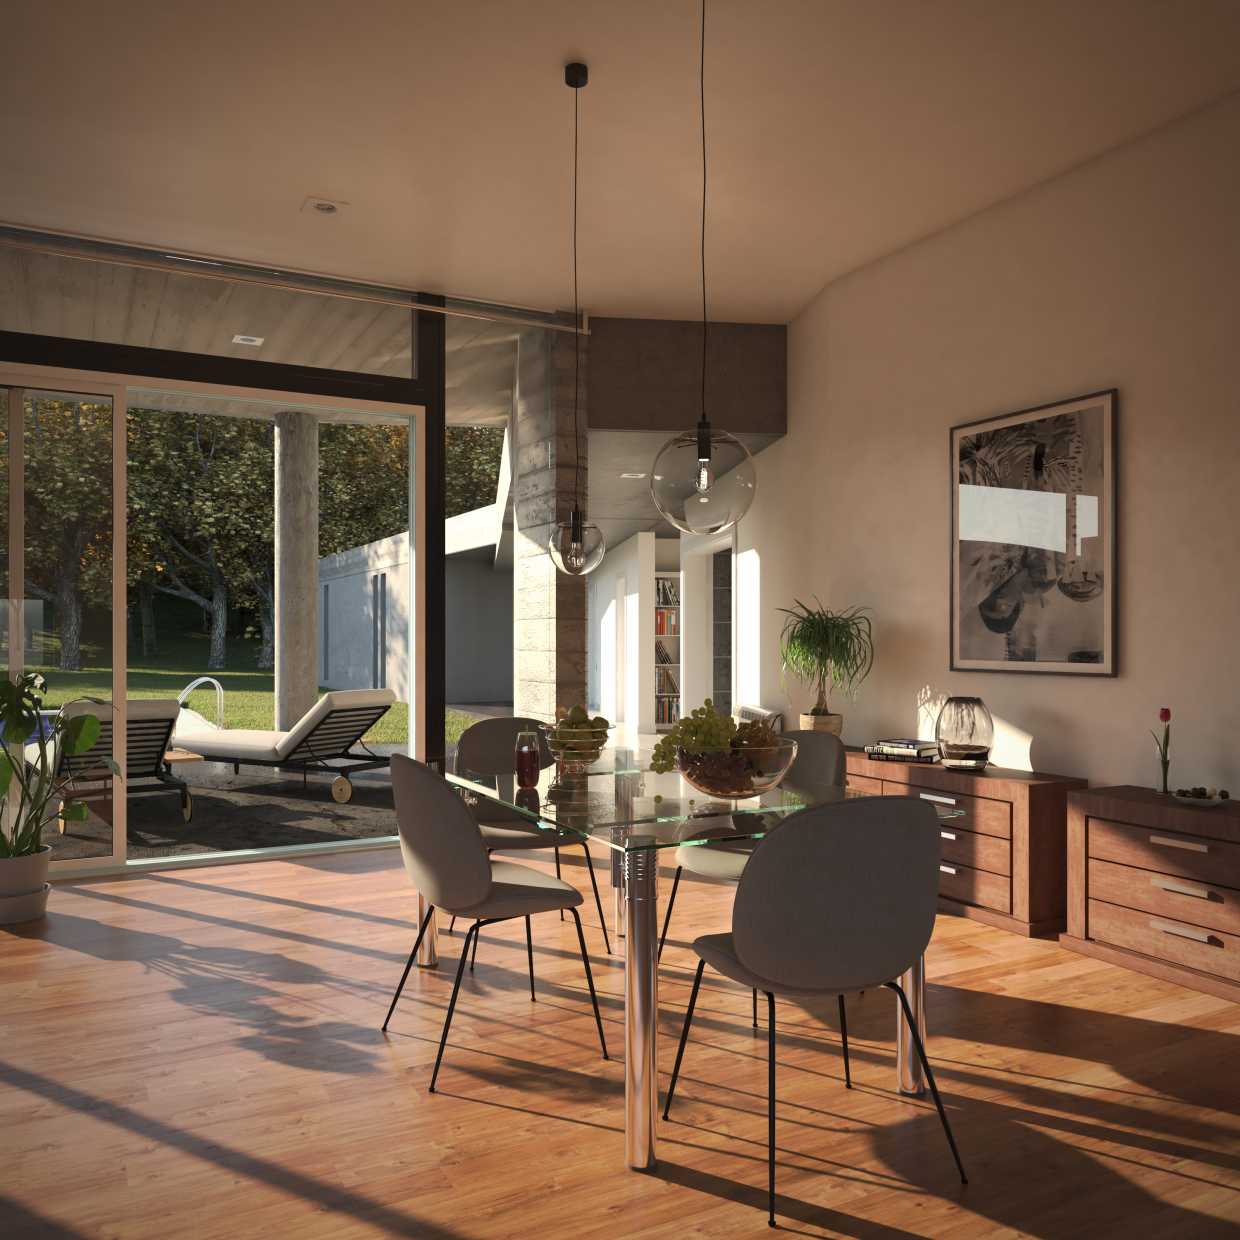 Cañuelas House in 3d max vray 3.0 image